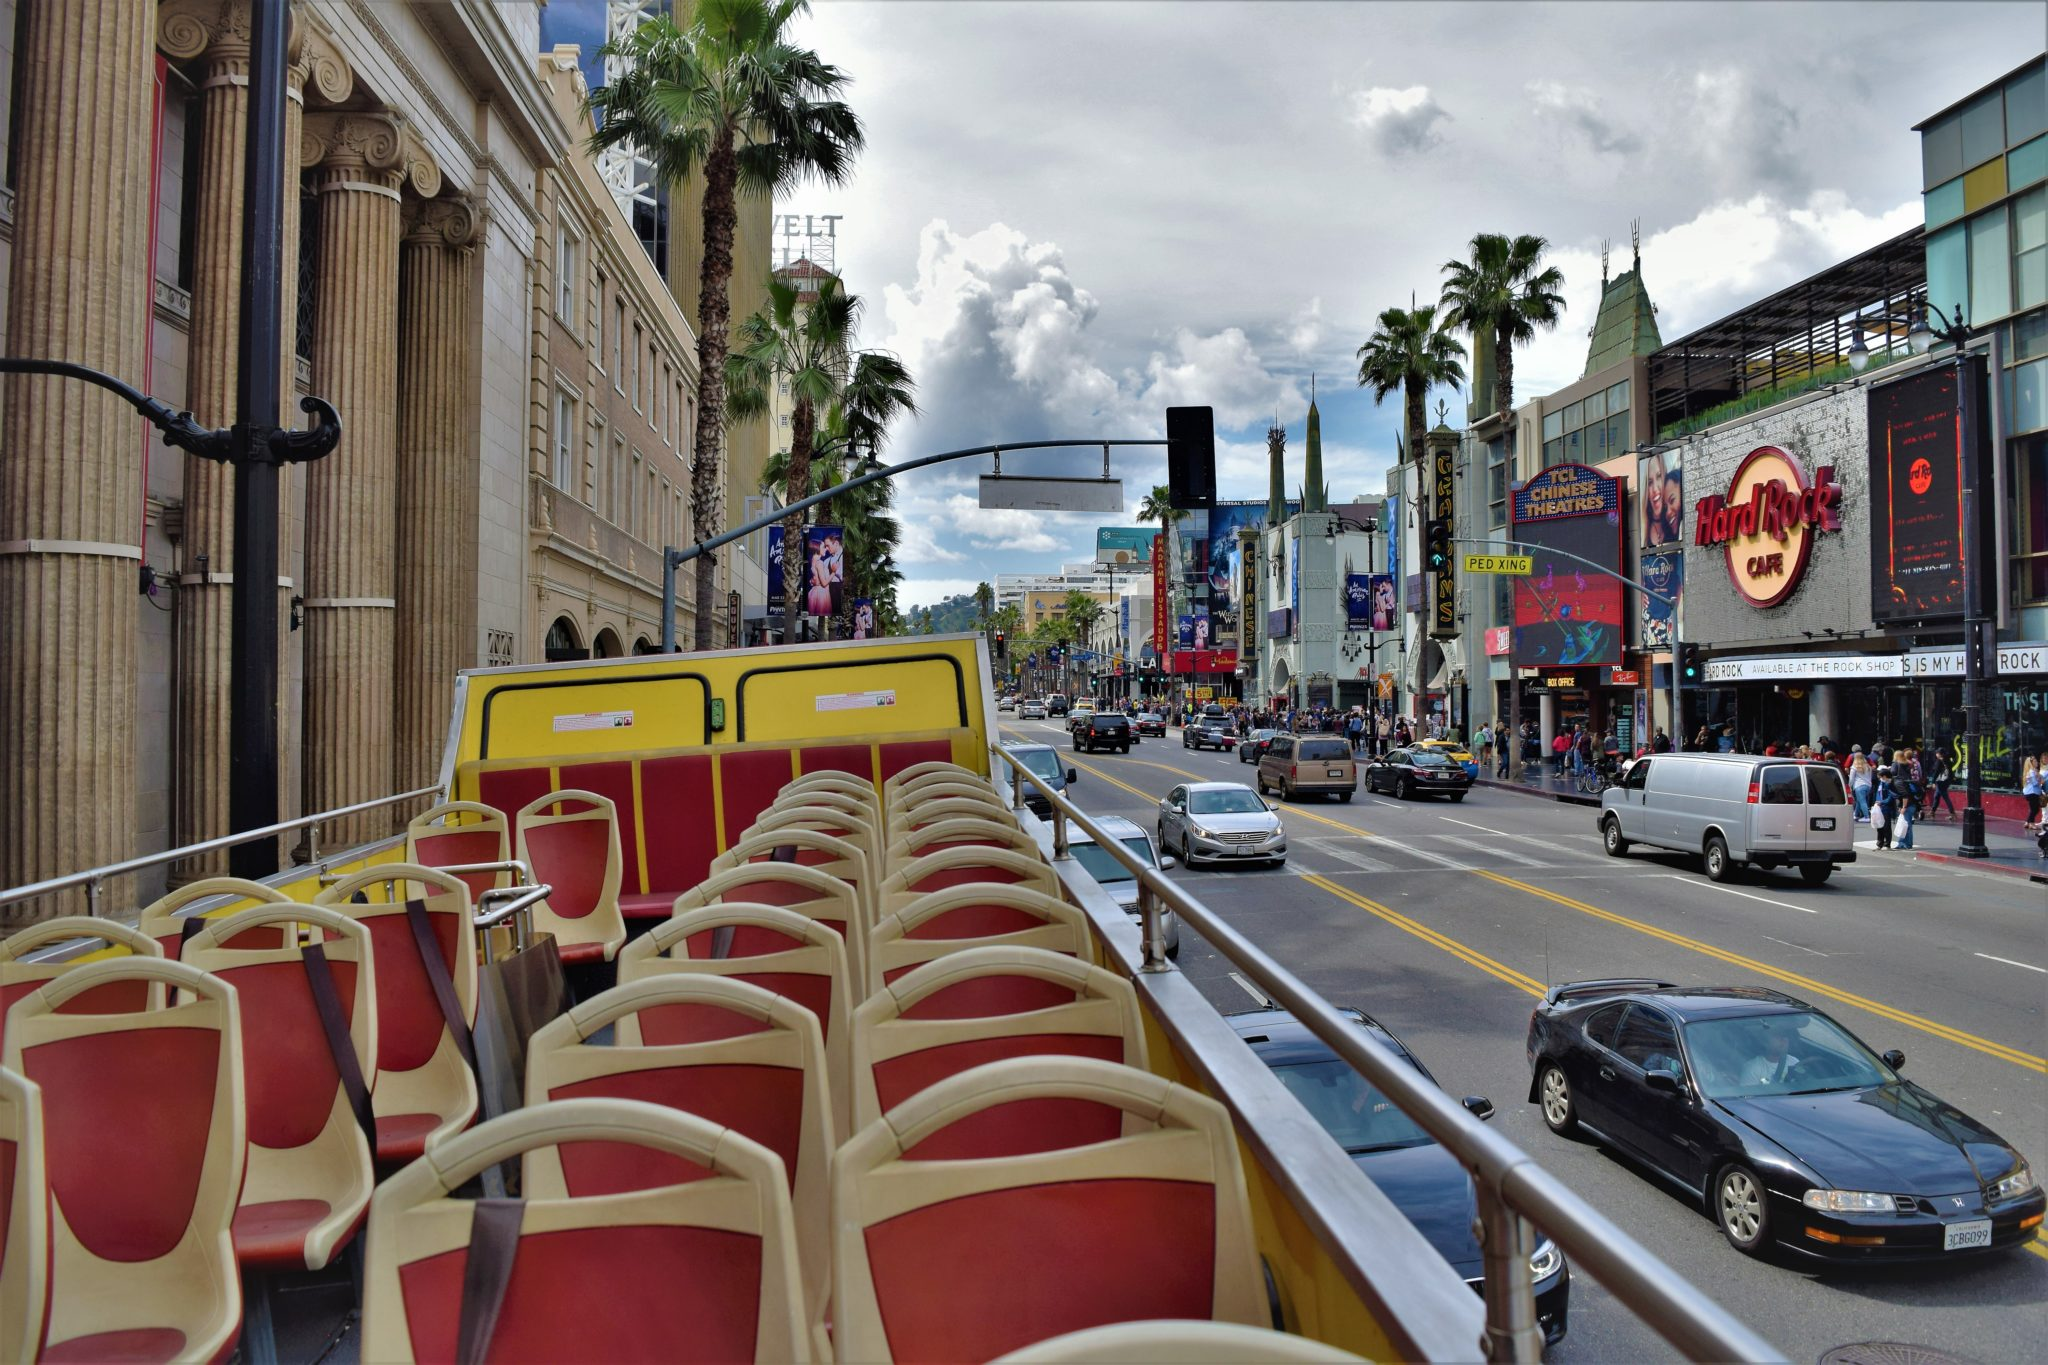 Hop on hop off bus los angeles, things to do in los angeles, hollywood